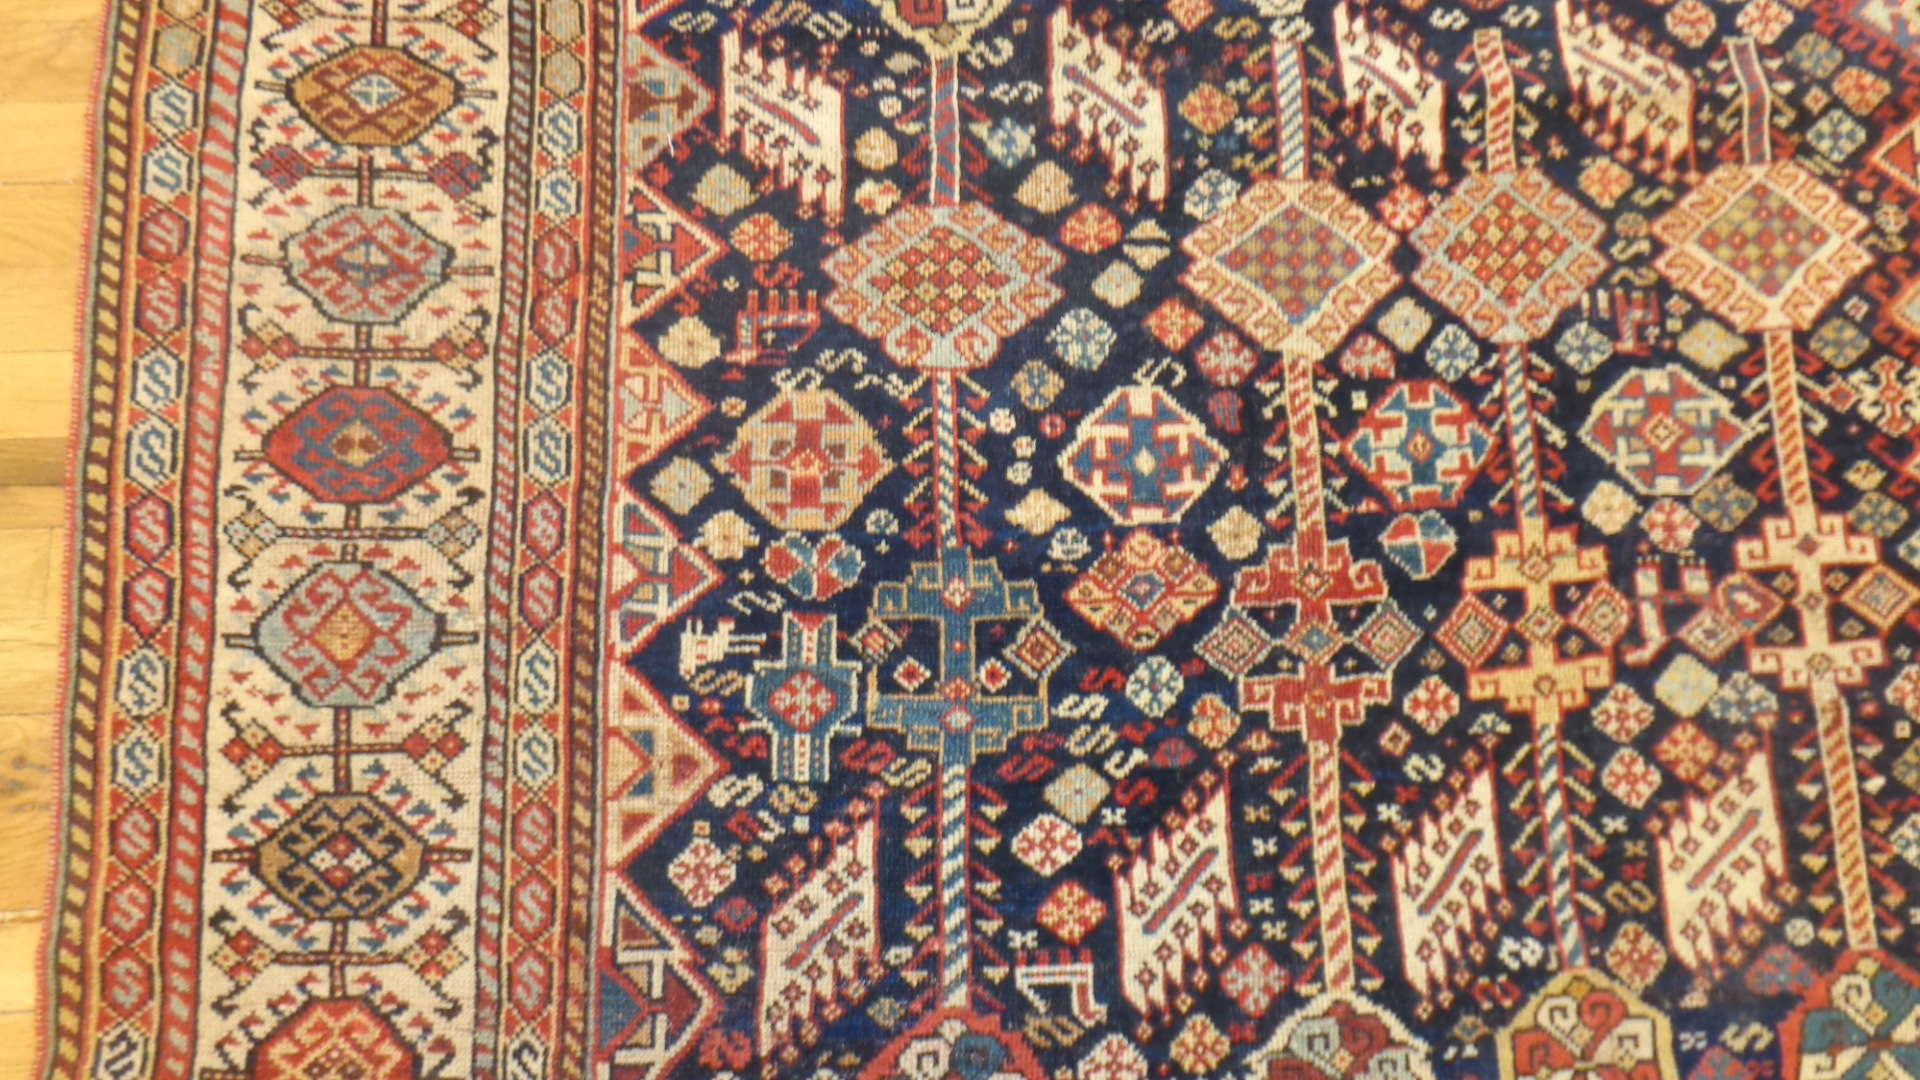 24748 antique persian qashqai rug 5.5x7.7-2